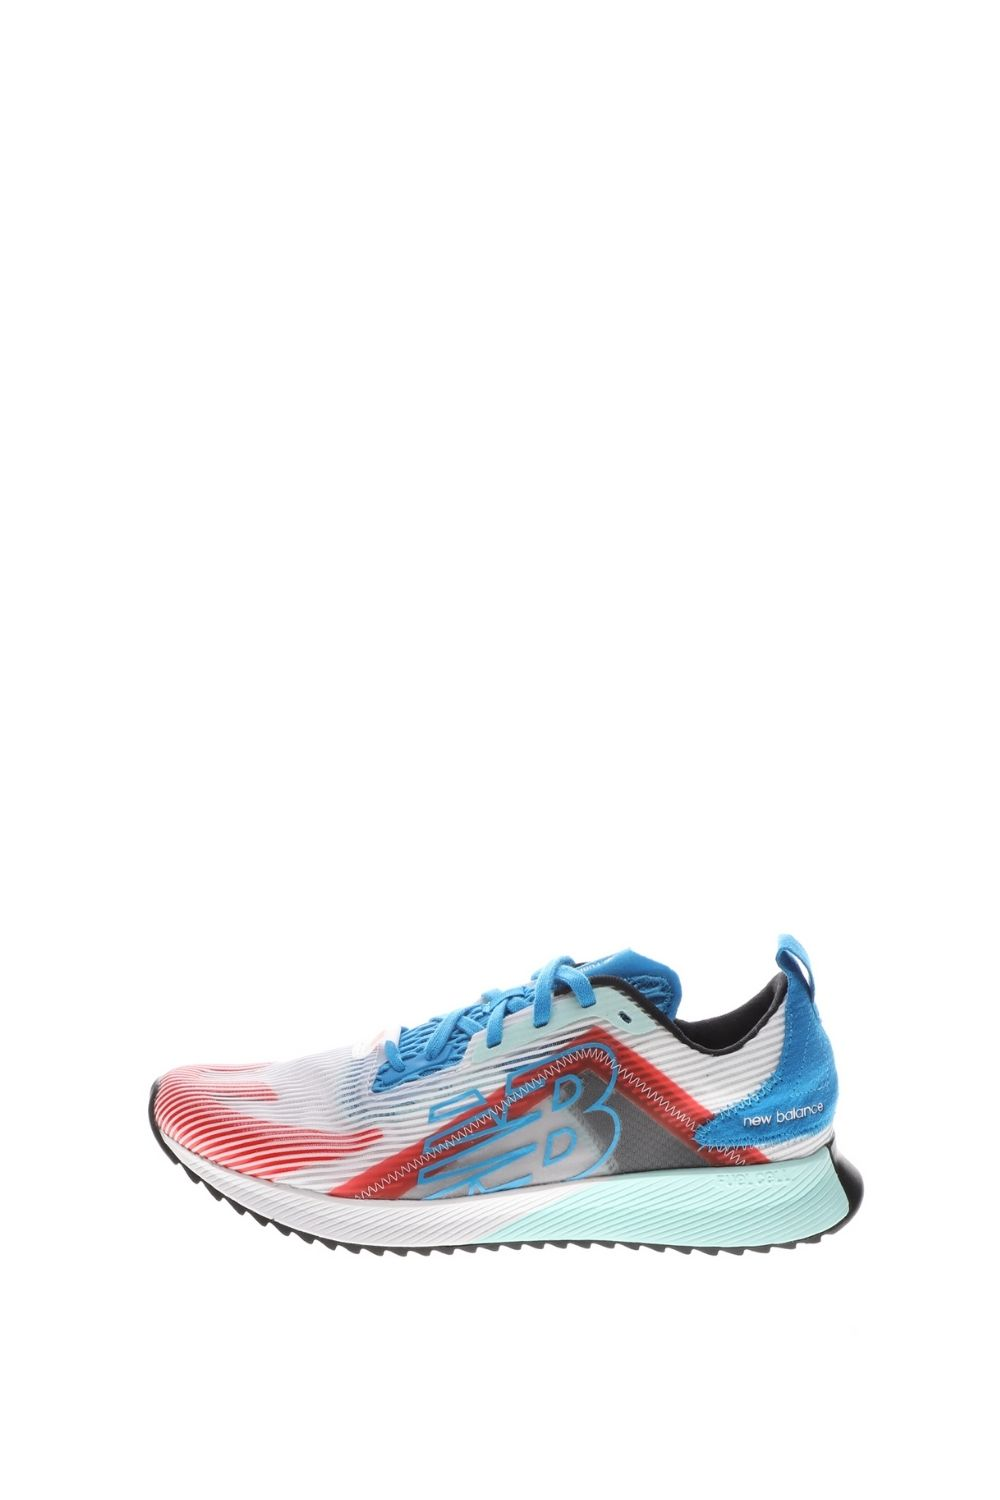 NEW BALANCE – Ανδρικά παπούτσια running NEW BALANCE FuelCell Echo λευκά μπλε